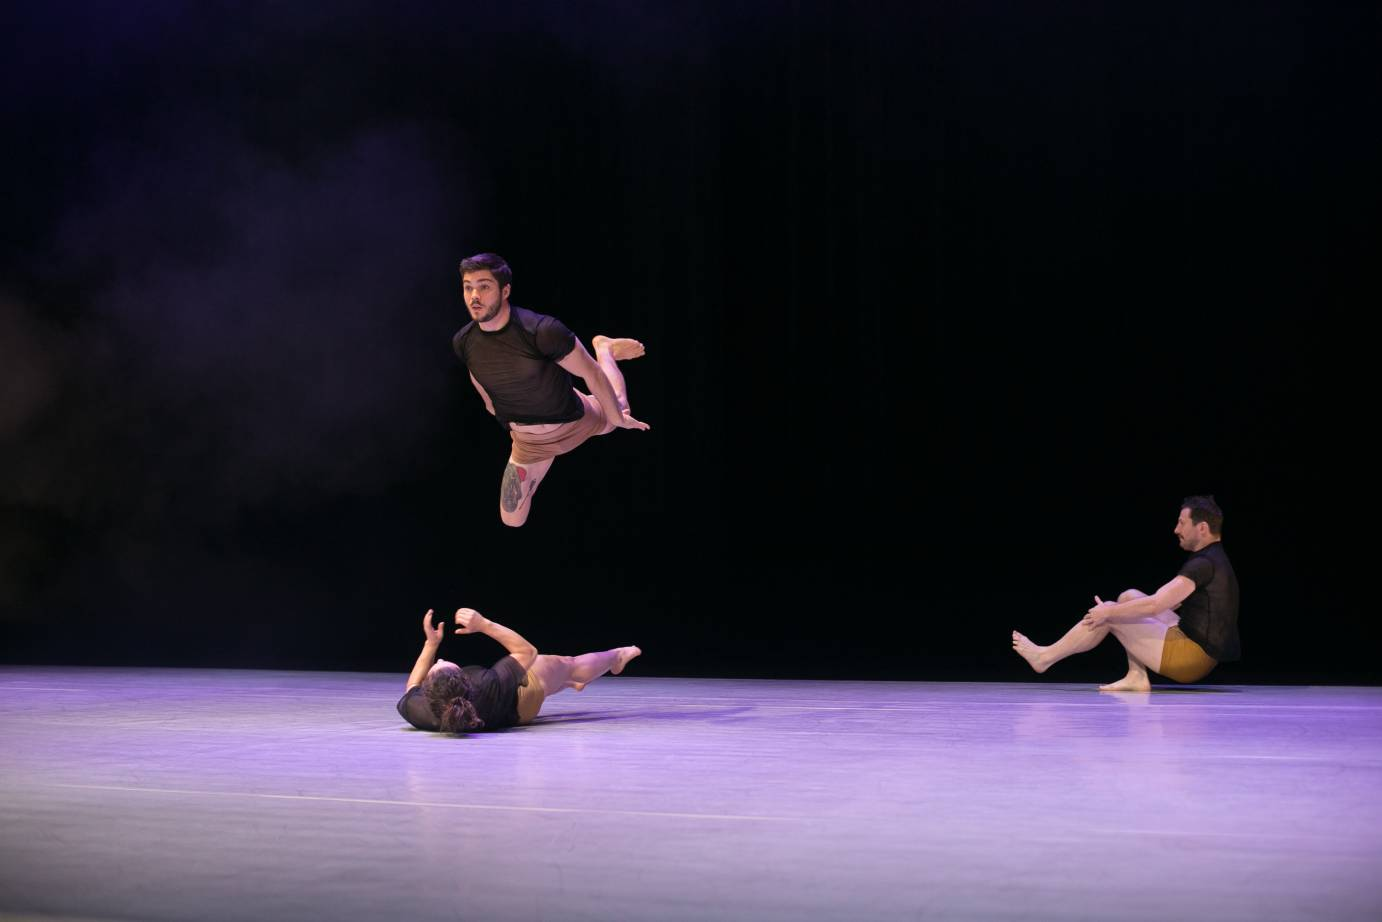 Two dancers roll on the floor while another jumps in the air parallel above one of them.